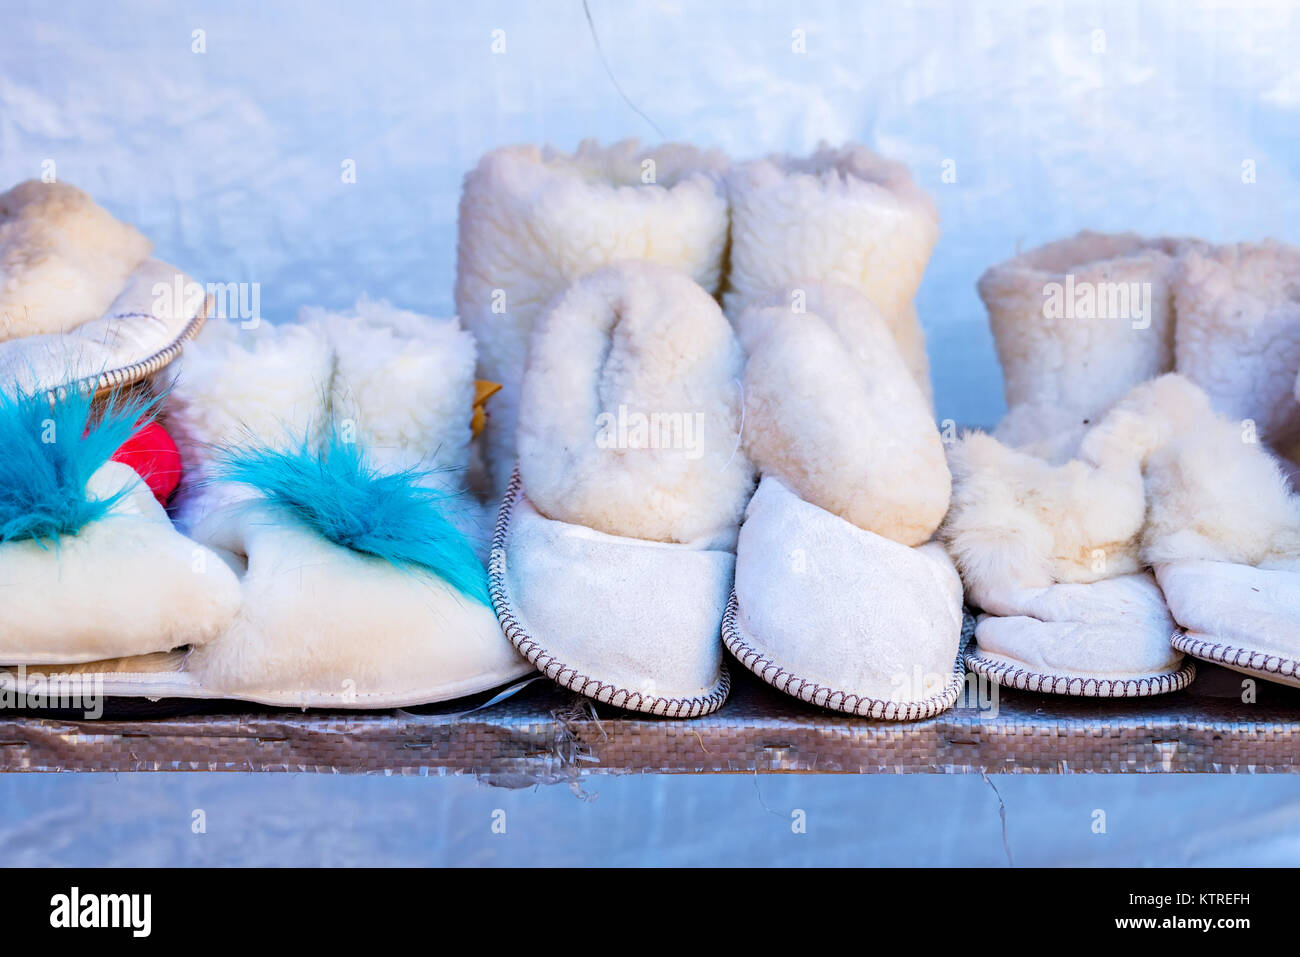 Several white domestic uggs - Stock Image